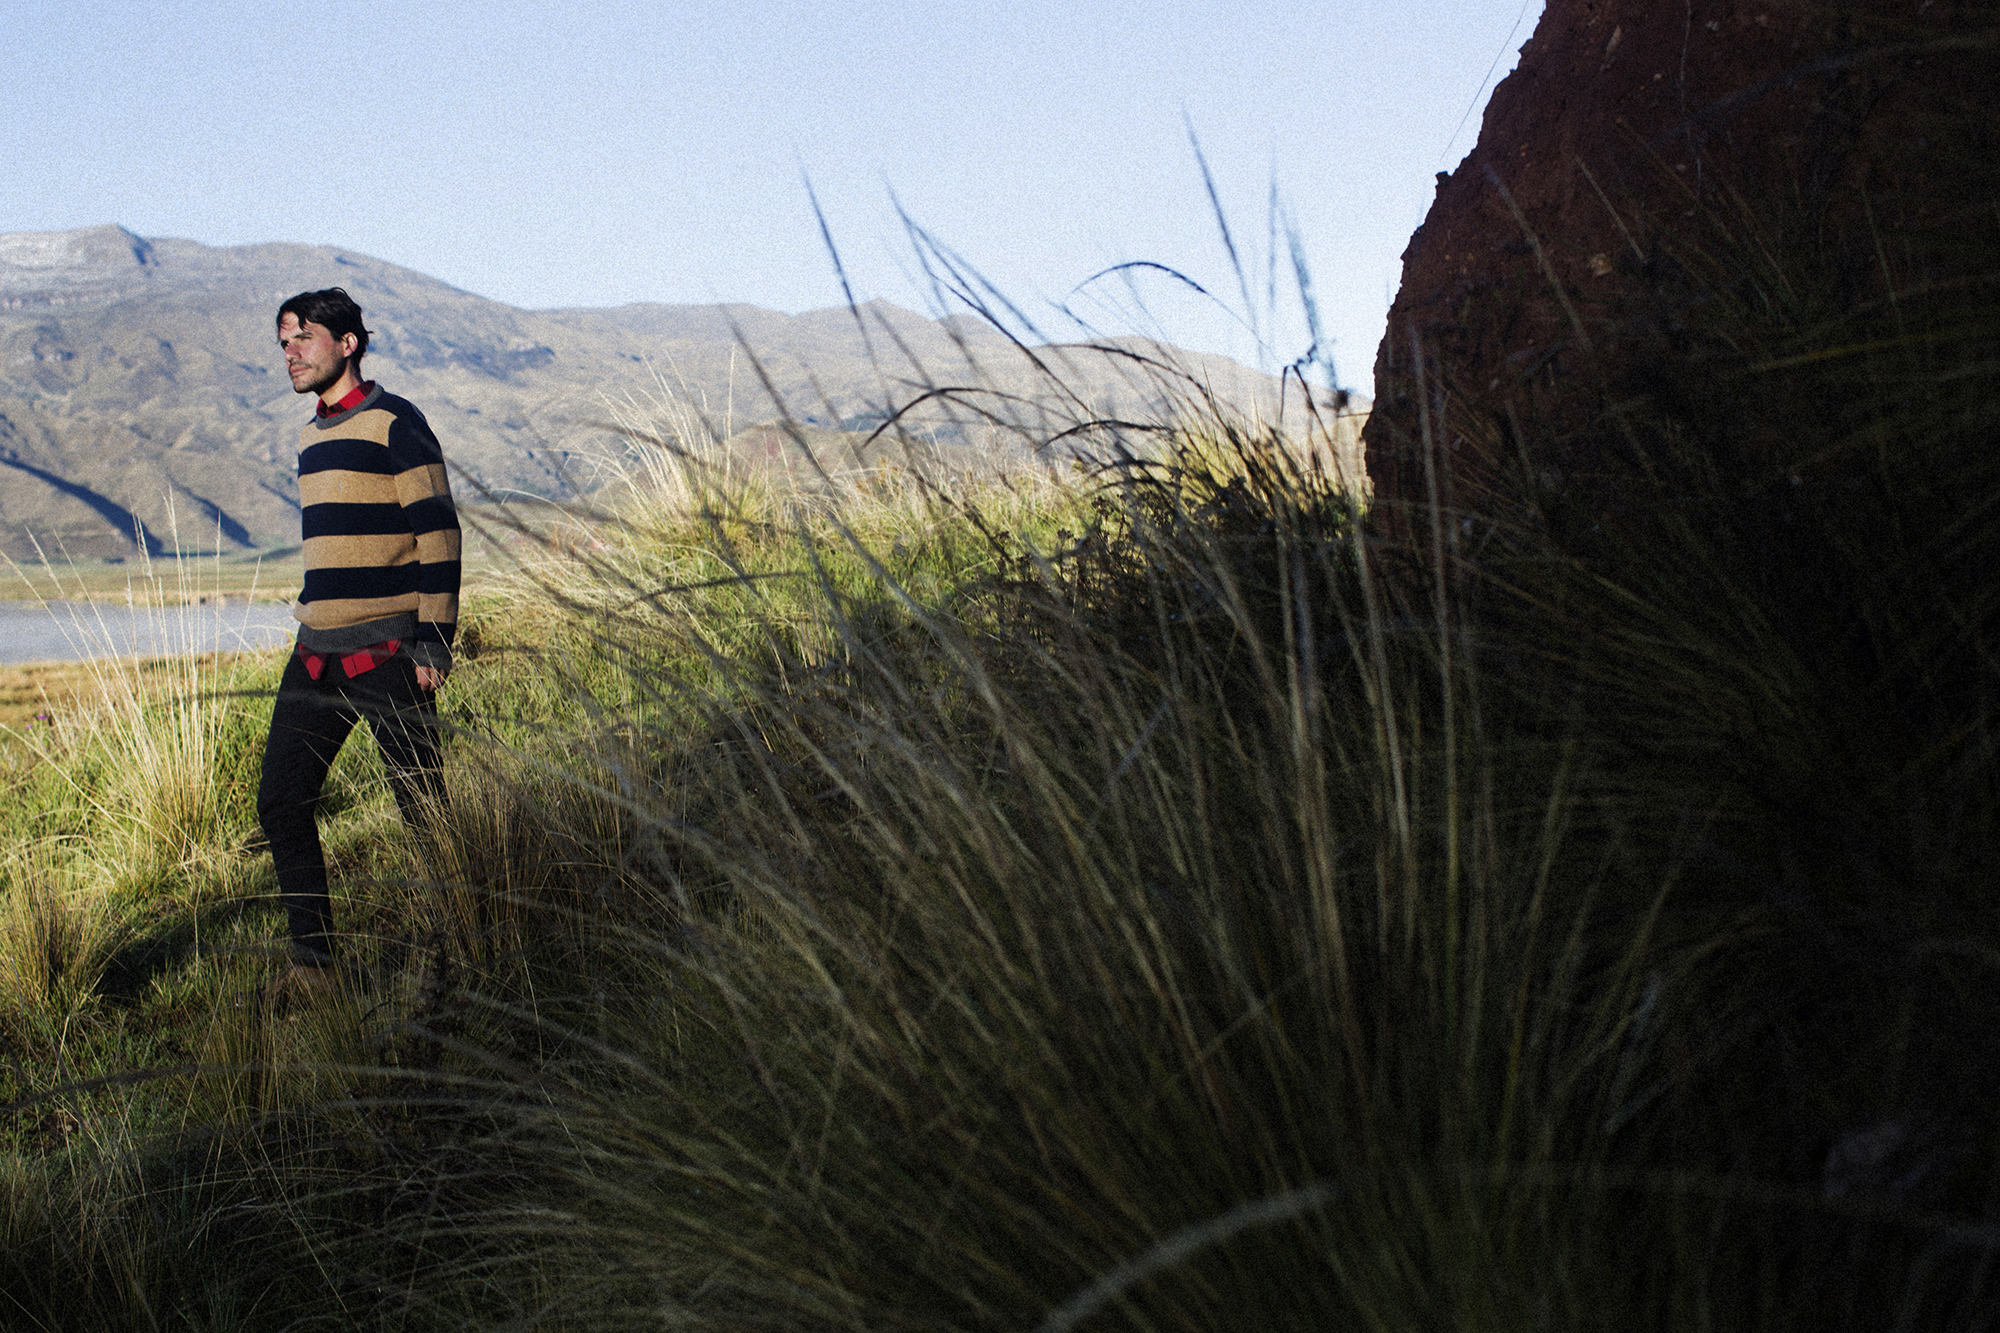 Chef Virgilio Martinez on Peru's rise from war-torn nation to gastronomic powerhouse